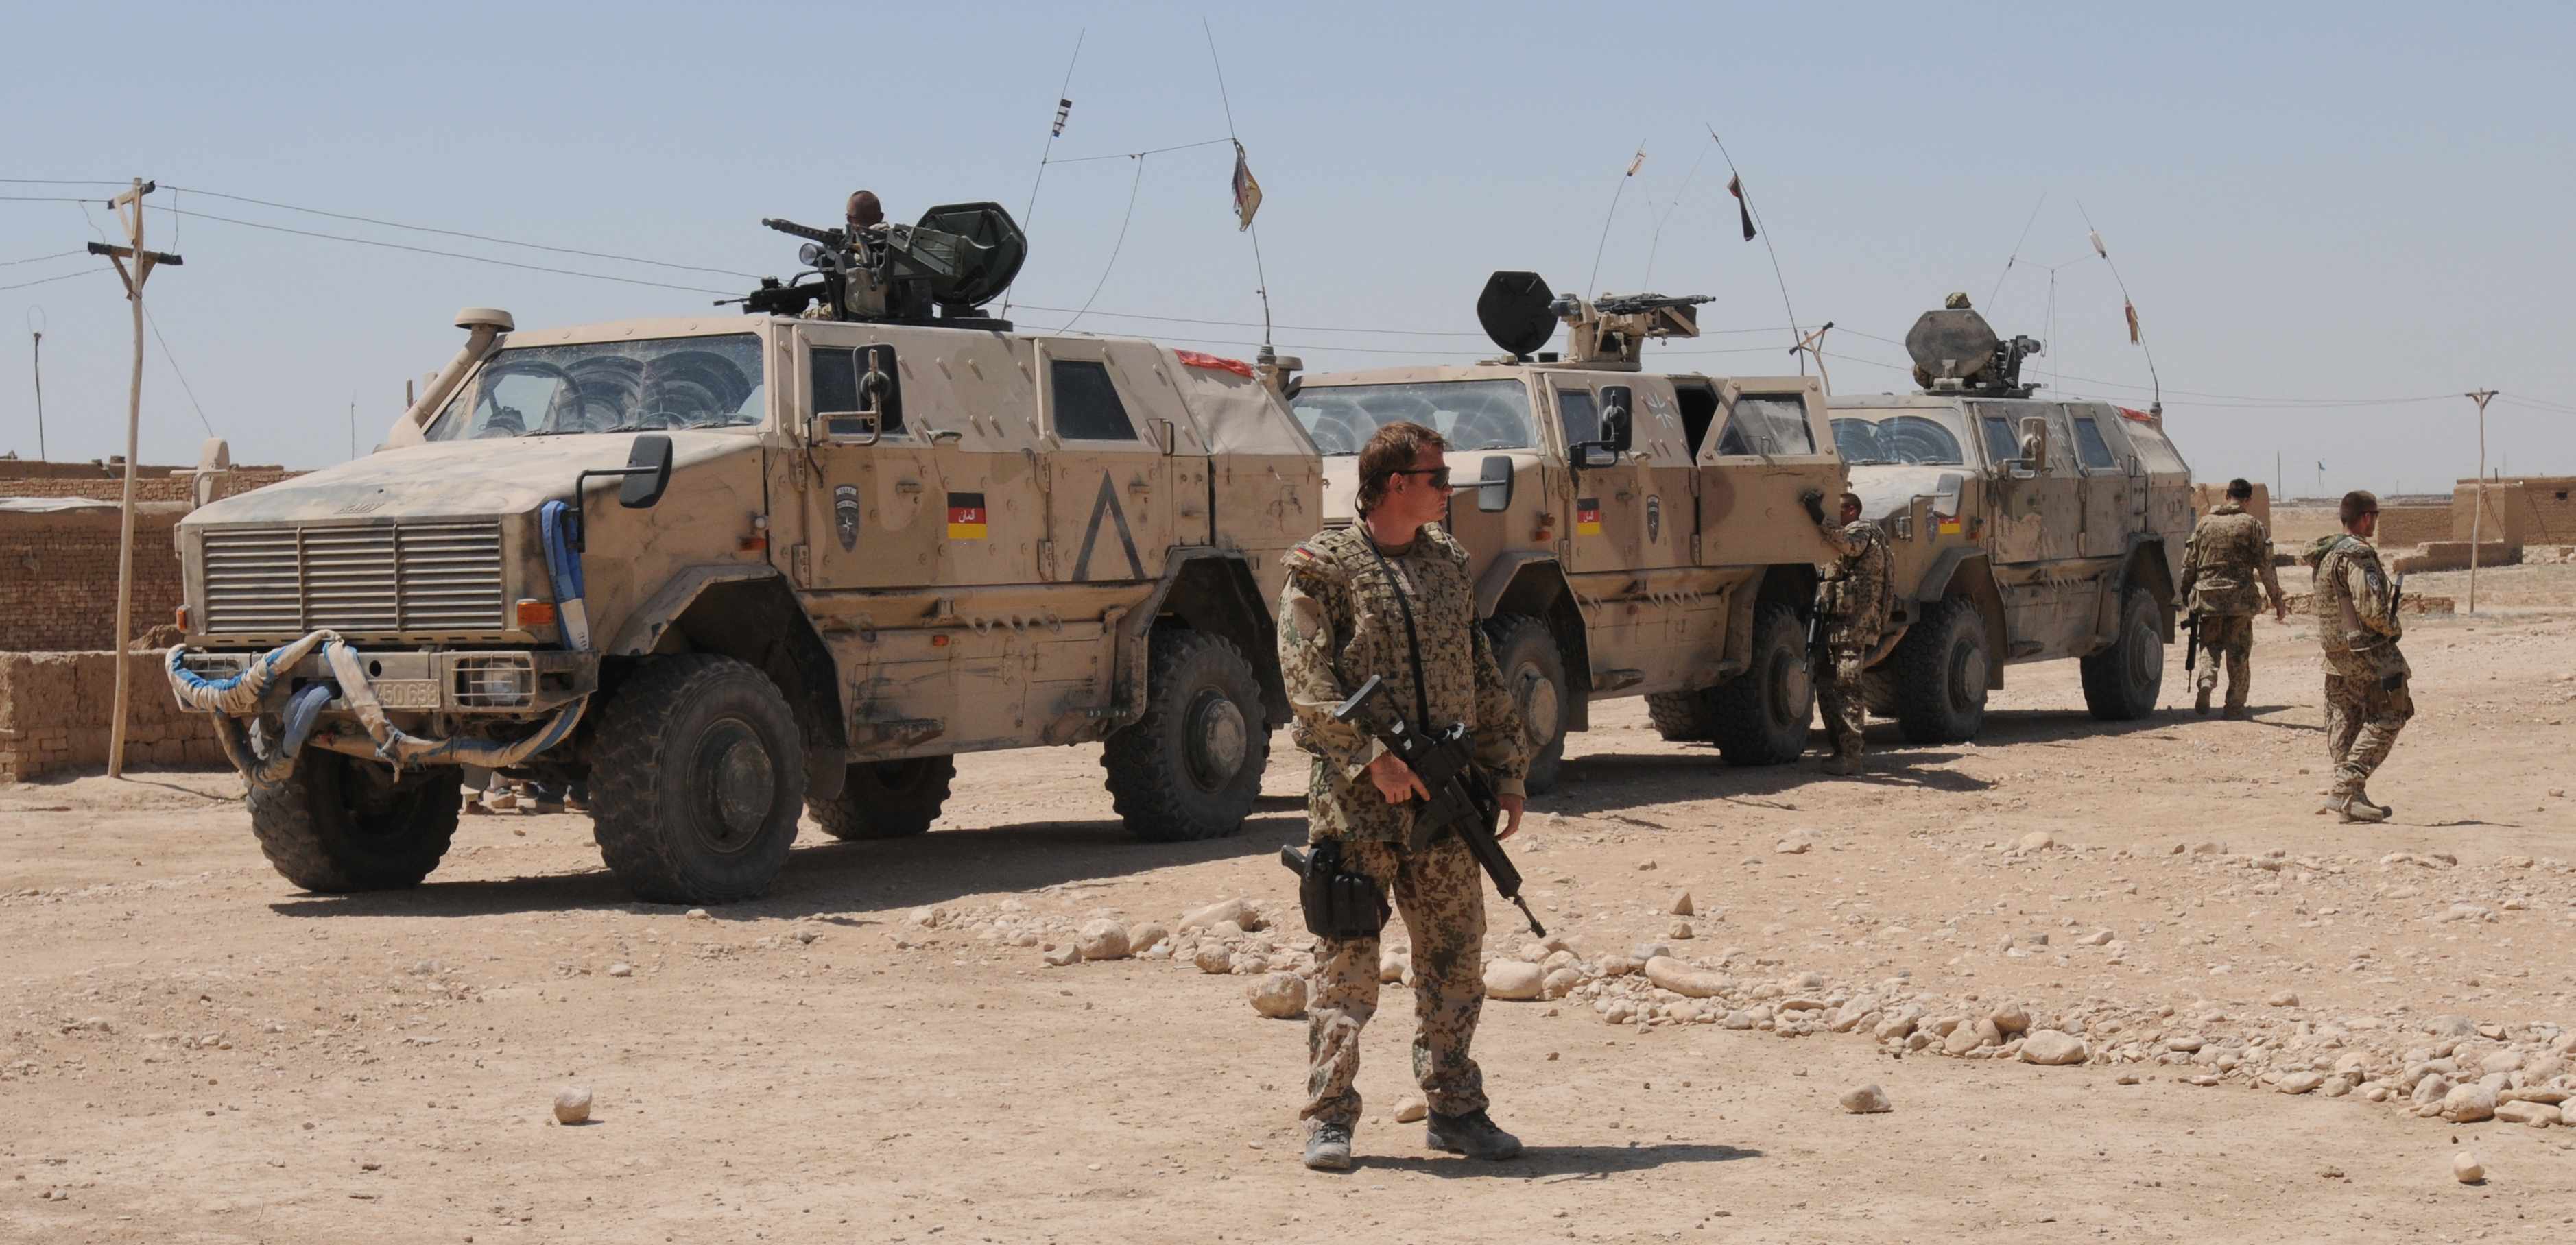 http://upload.wikimedia.org/wikipedia/commons/b/b0/ATF_Dingo_in_German_service_%28Afghanistan%29.jpg